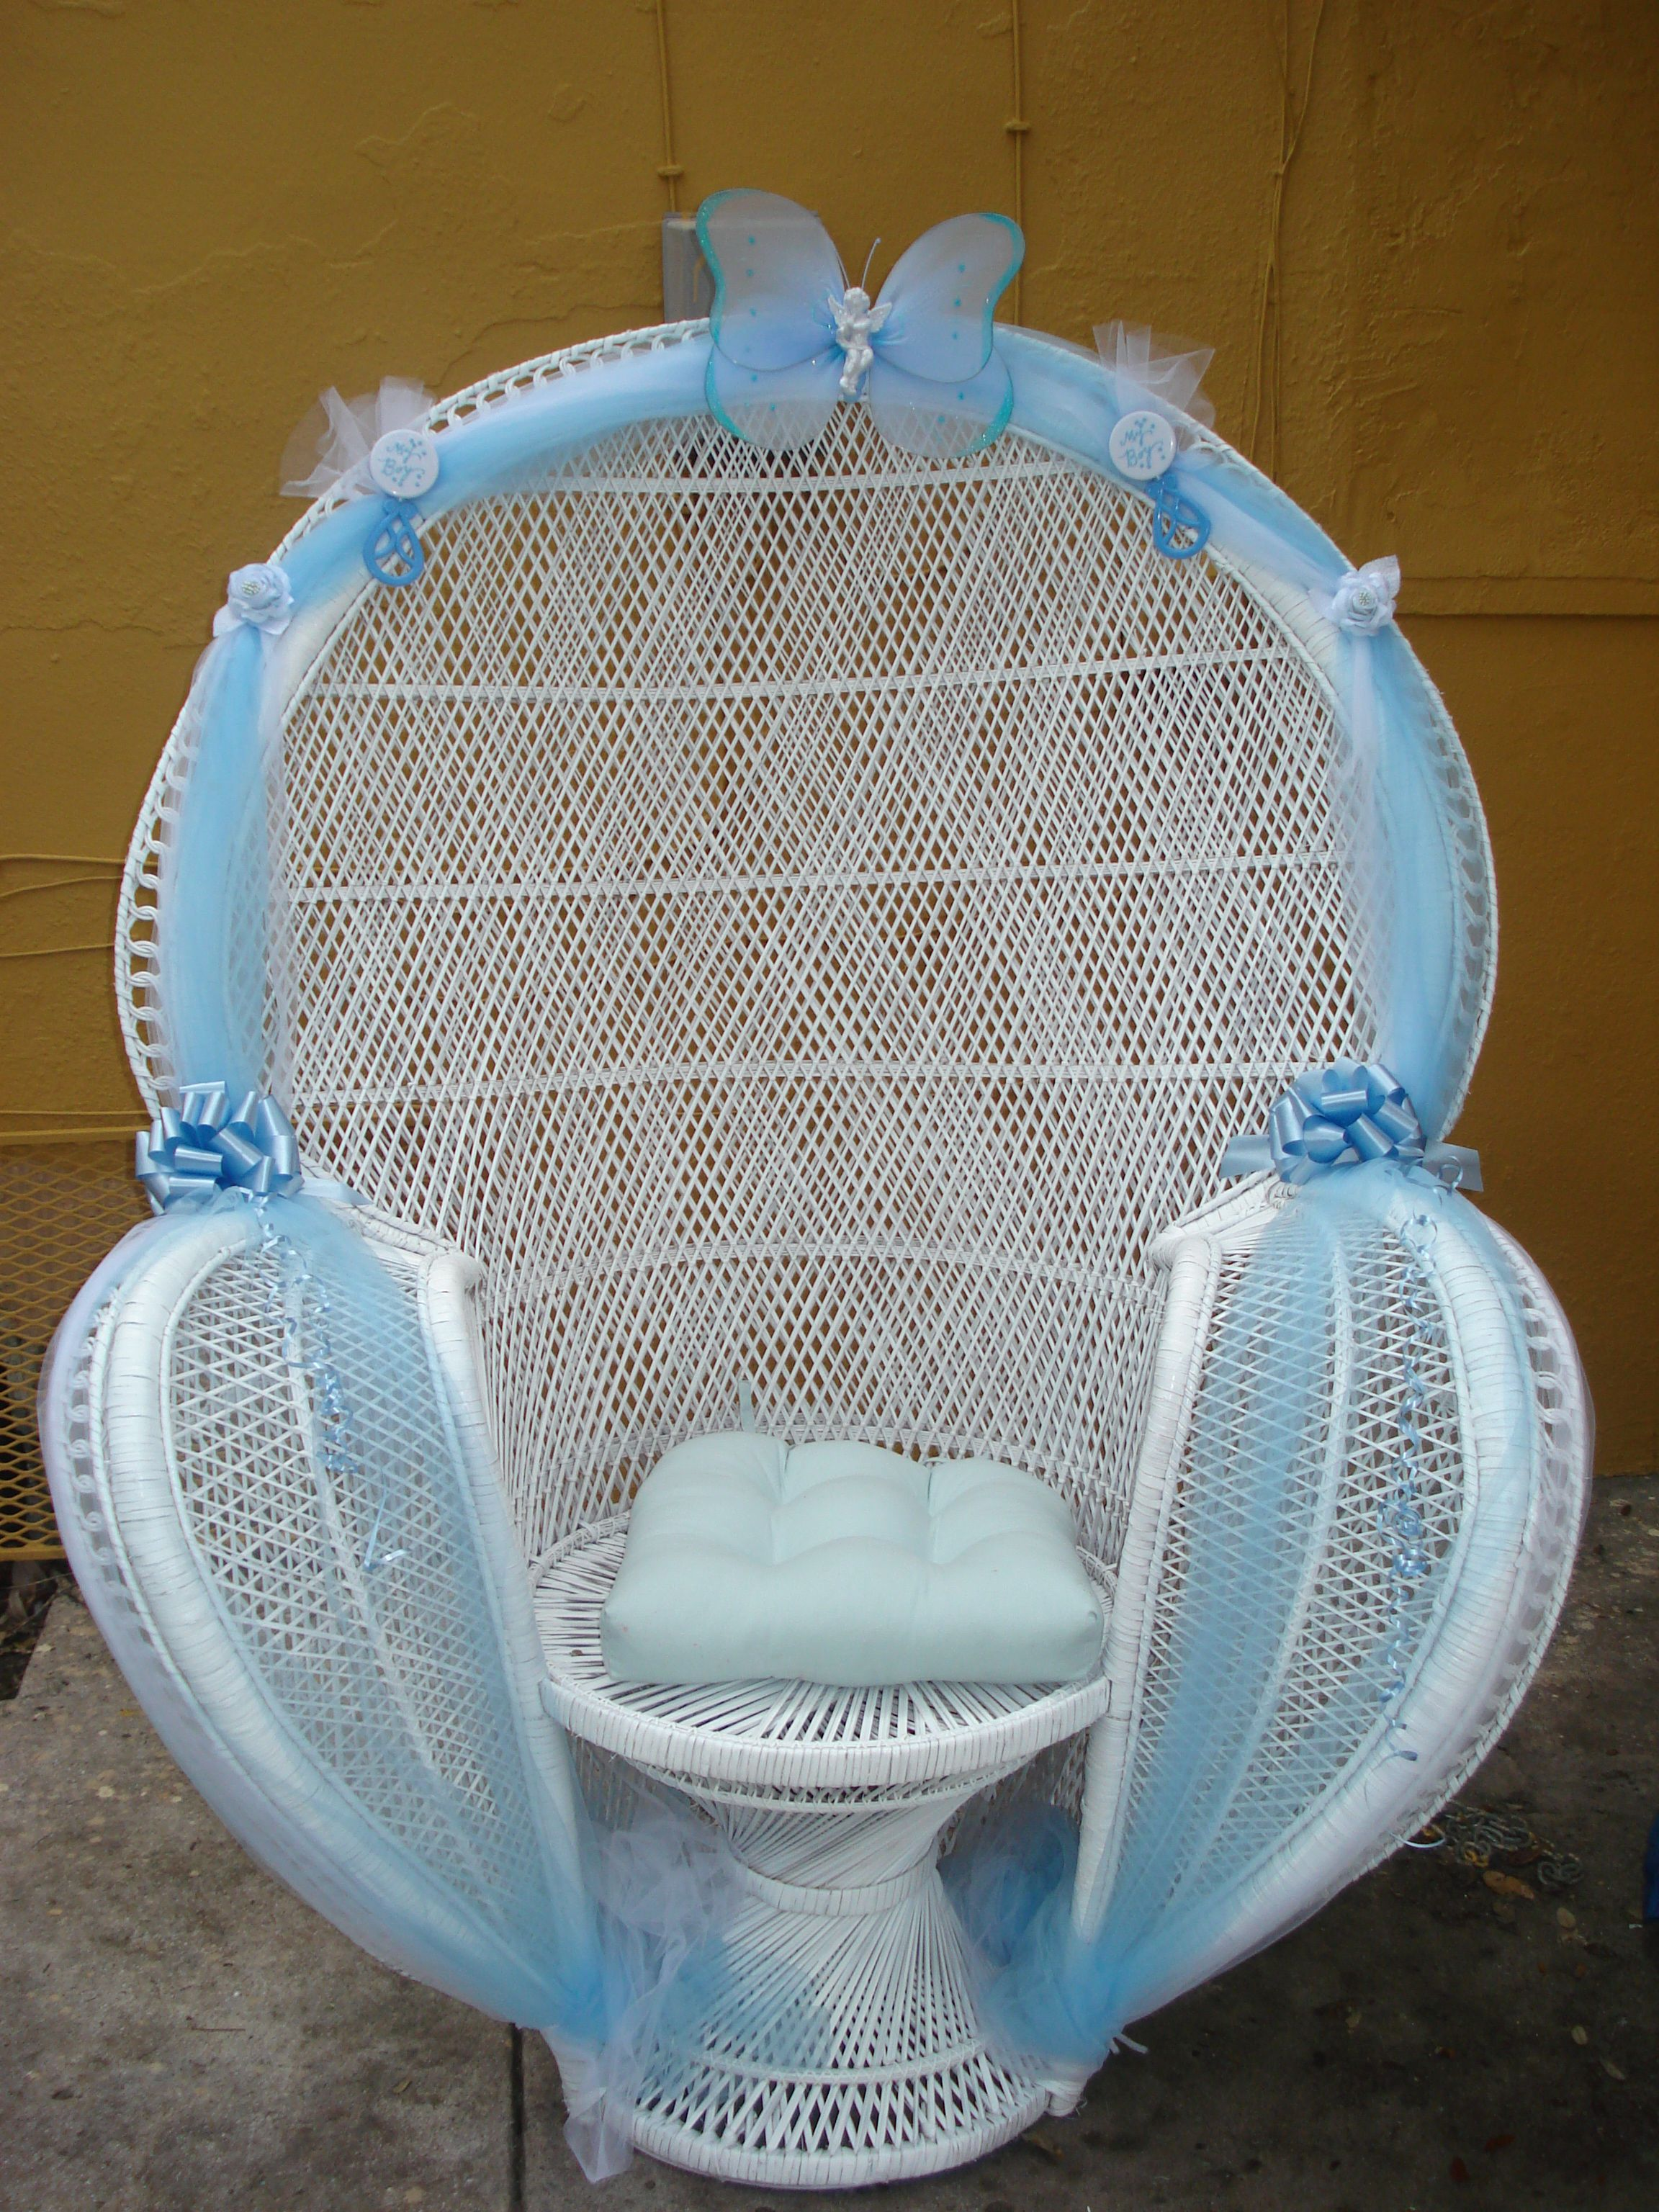 chair rentals in miami white task chairs without arms baby boy shower themes rental monkey